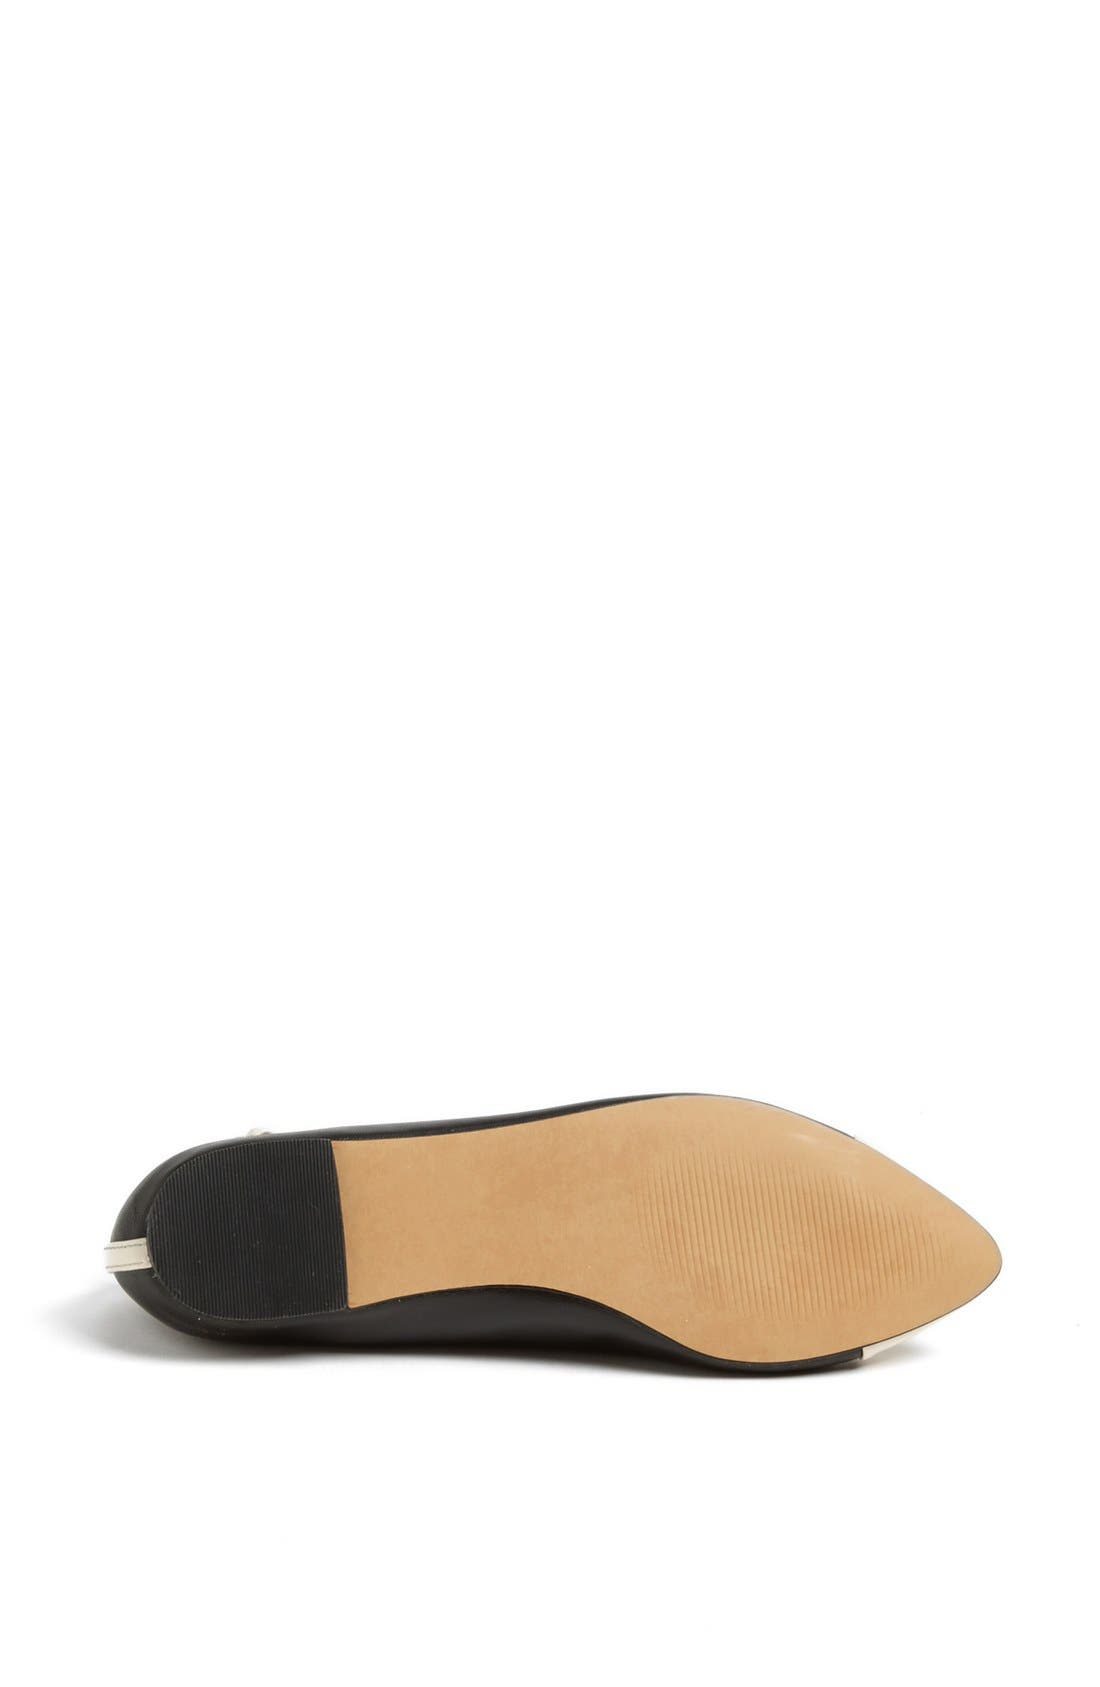 Julianne Hough for Sole Society 'Addy' Flat,                             Alternate thumbnail 3, color,                             001